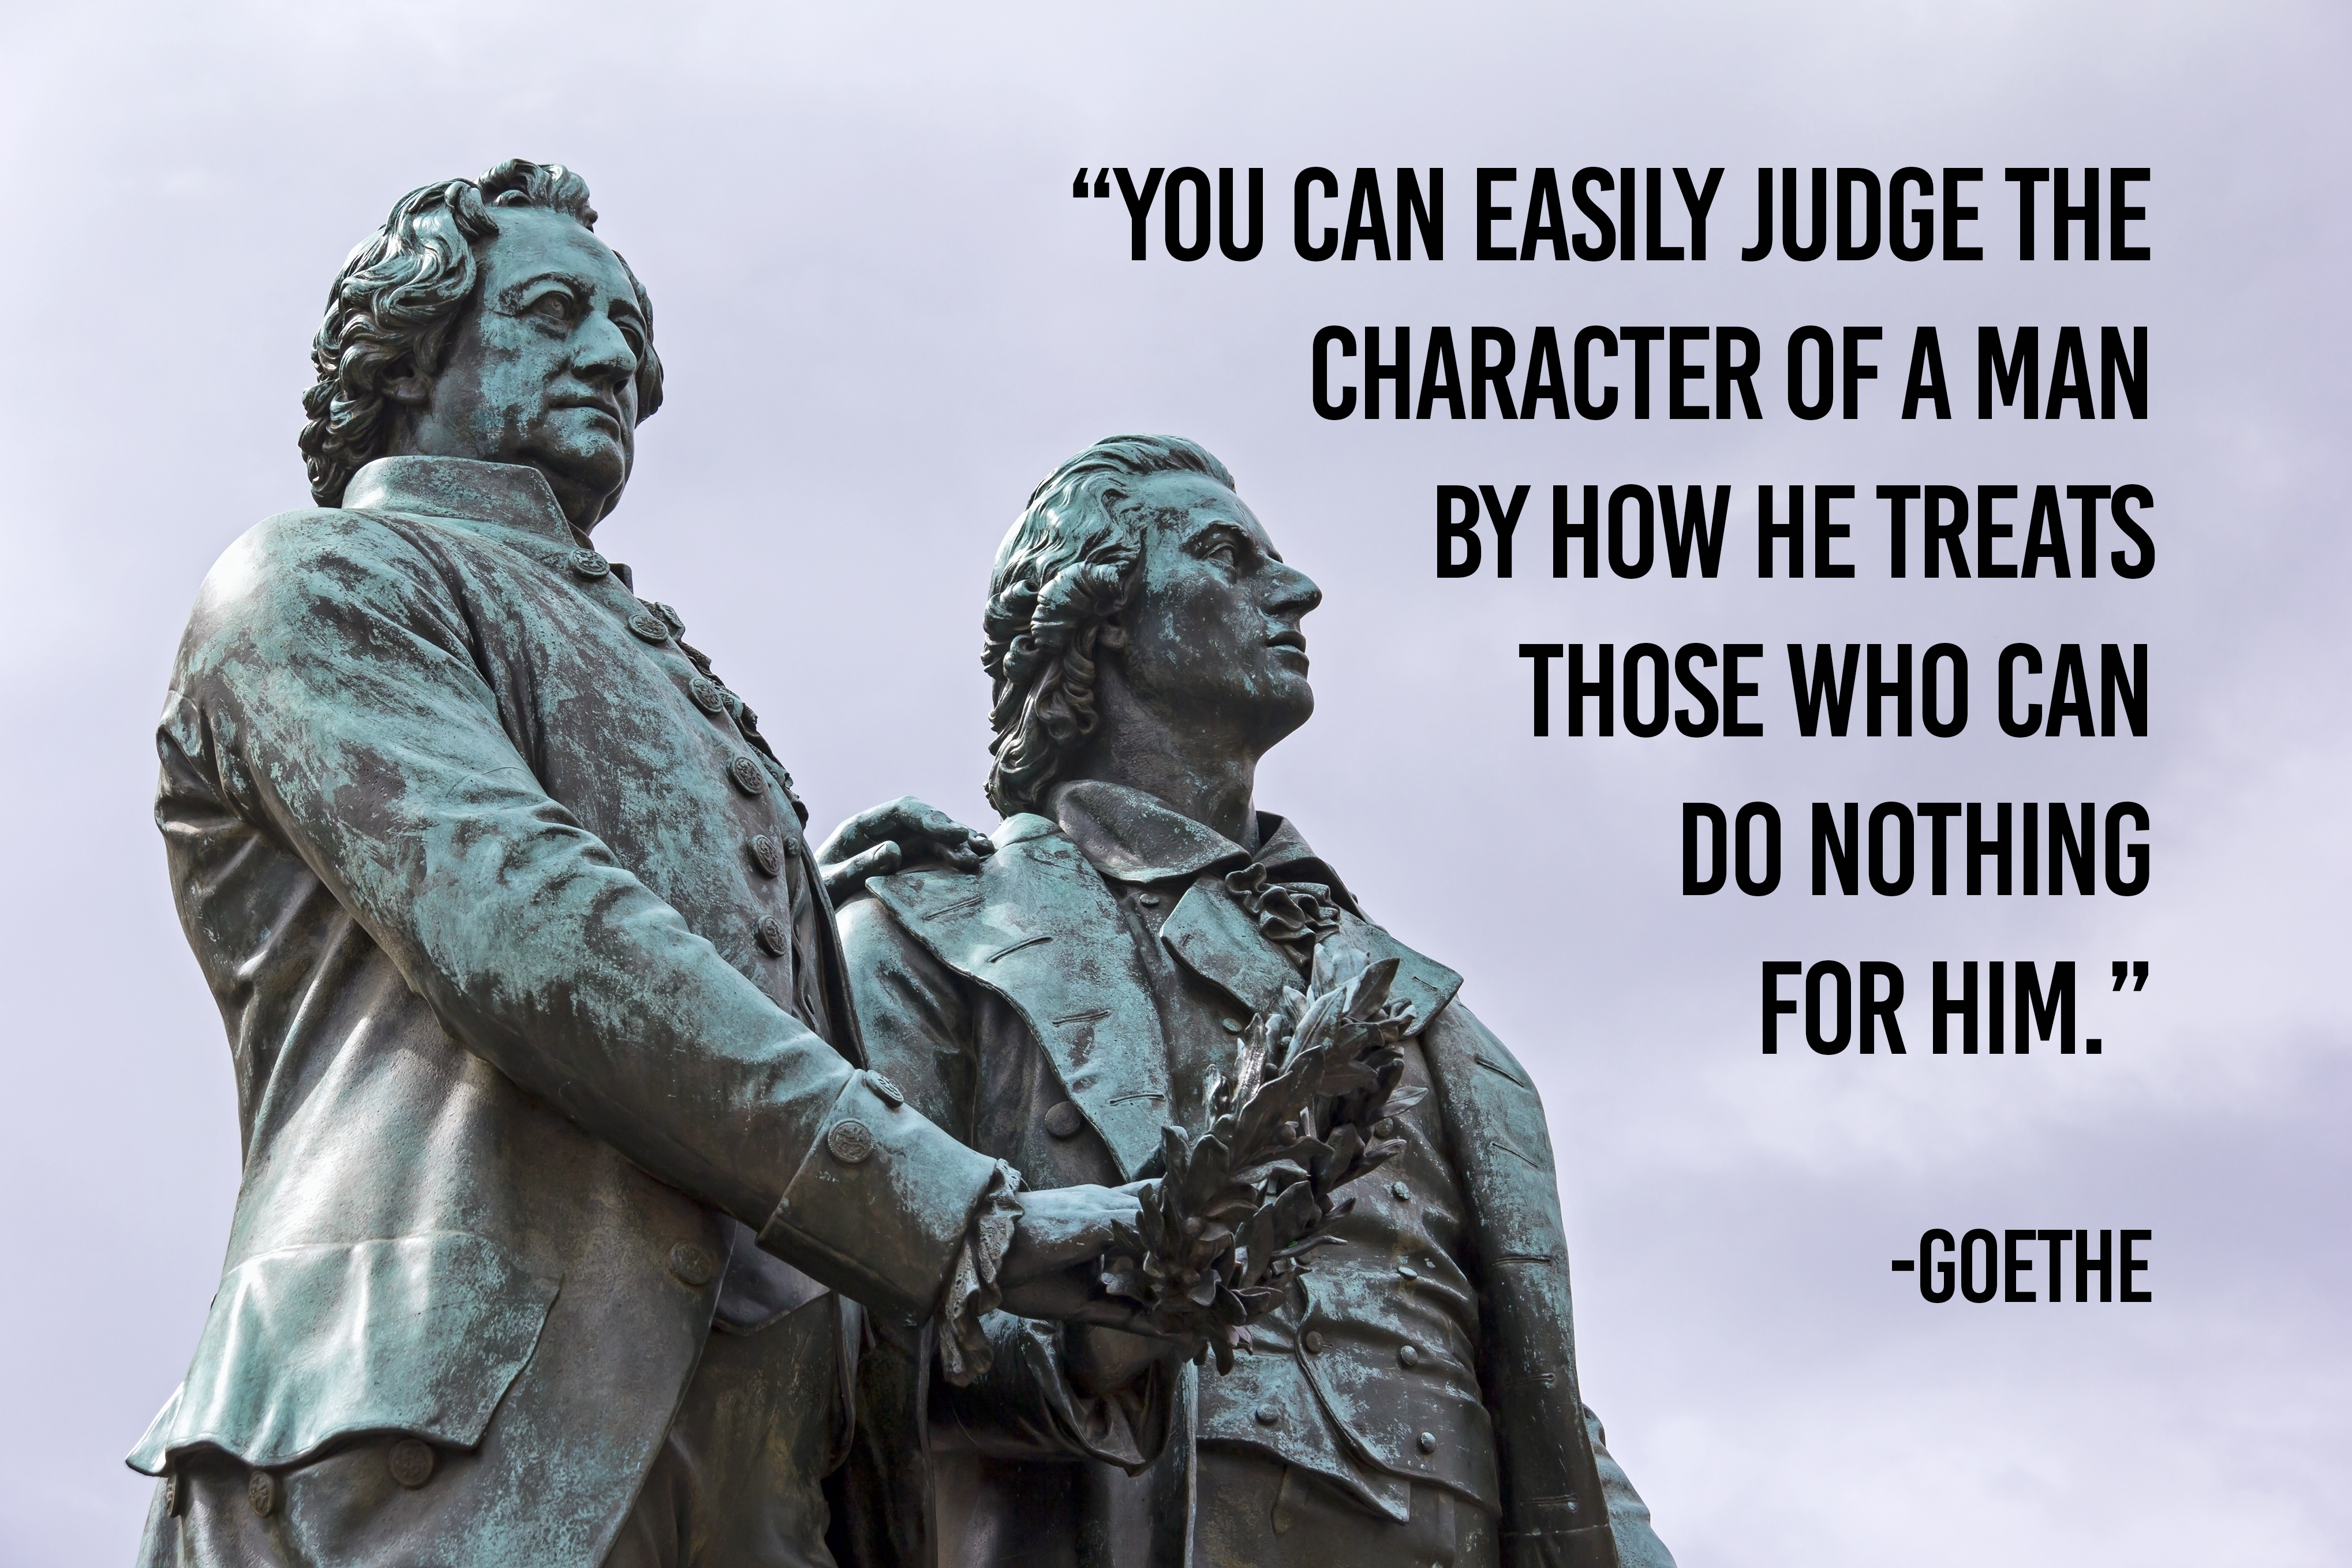 You can easily judge the character of a man